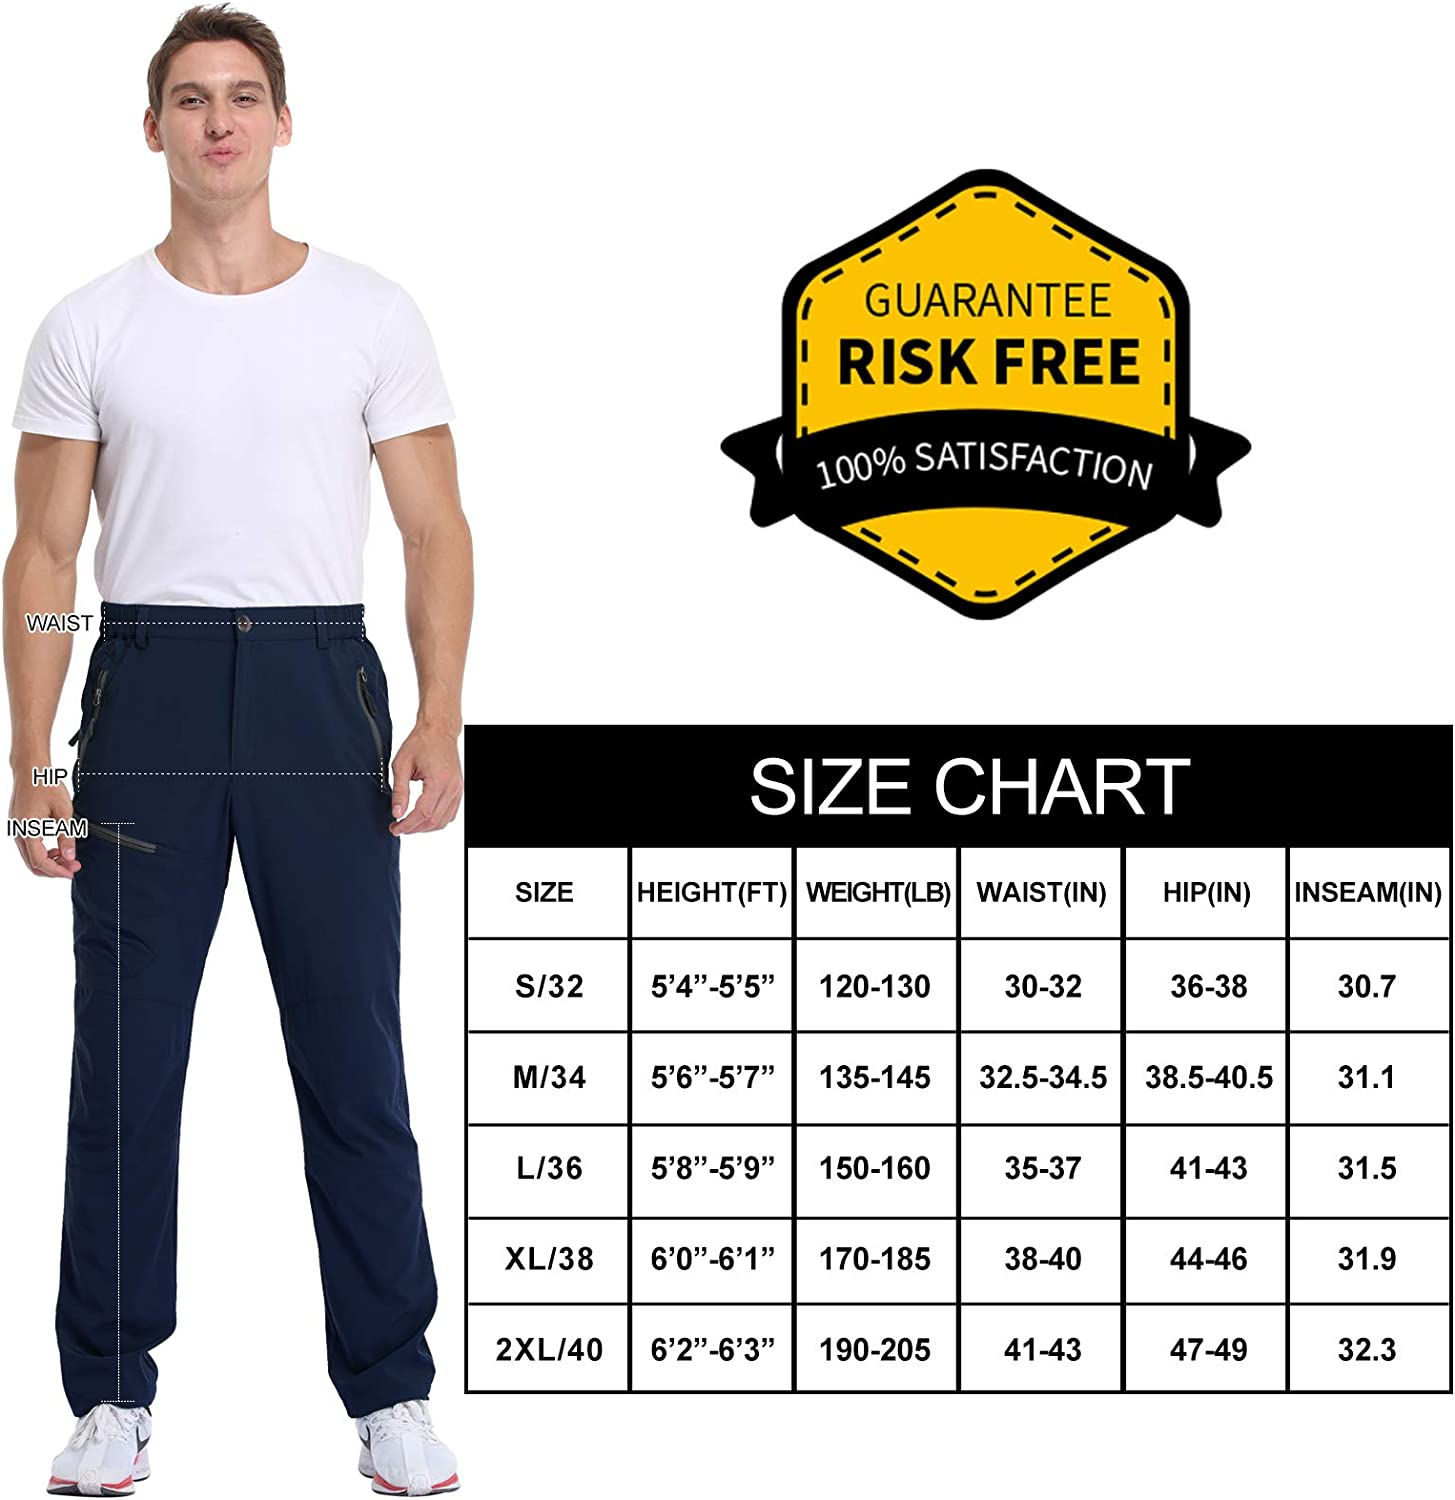 MOCOLY Mens Hiking Cargo Pants Outdoor Lightweight Quick Dry Water Resistant UPF 50 Long Pants with Zipper Pockets